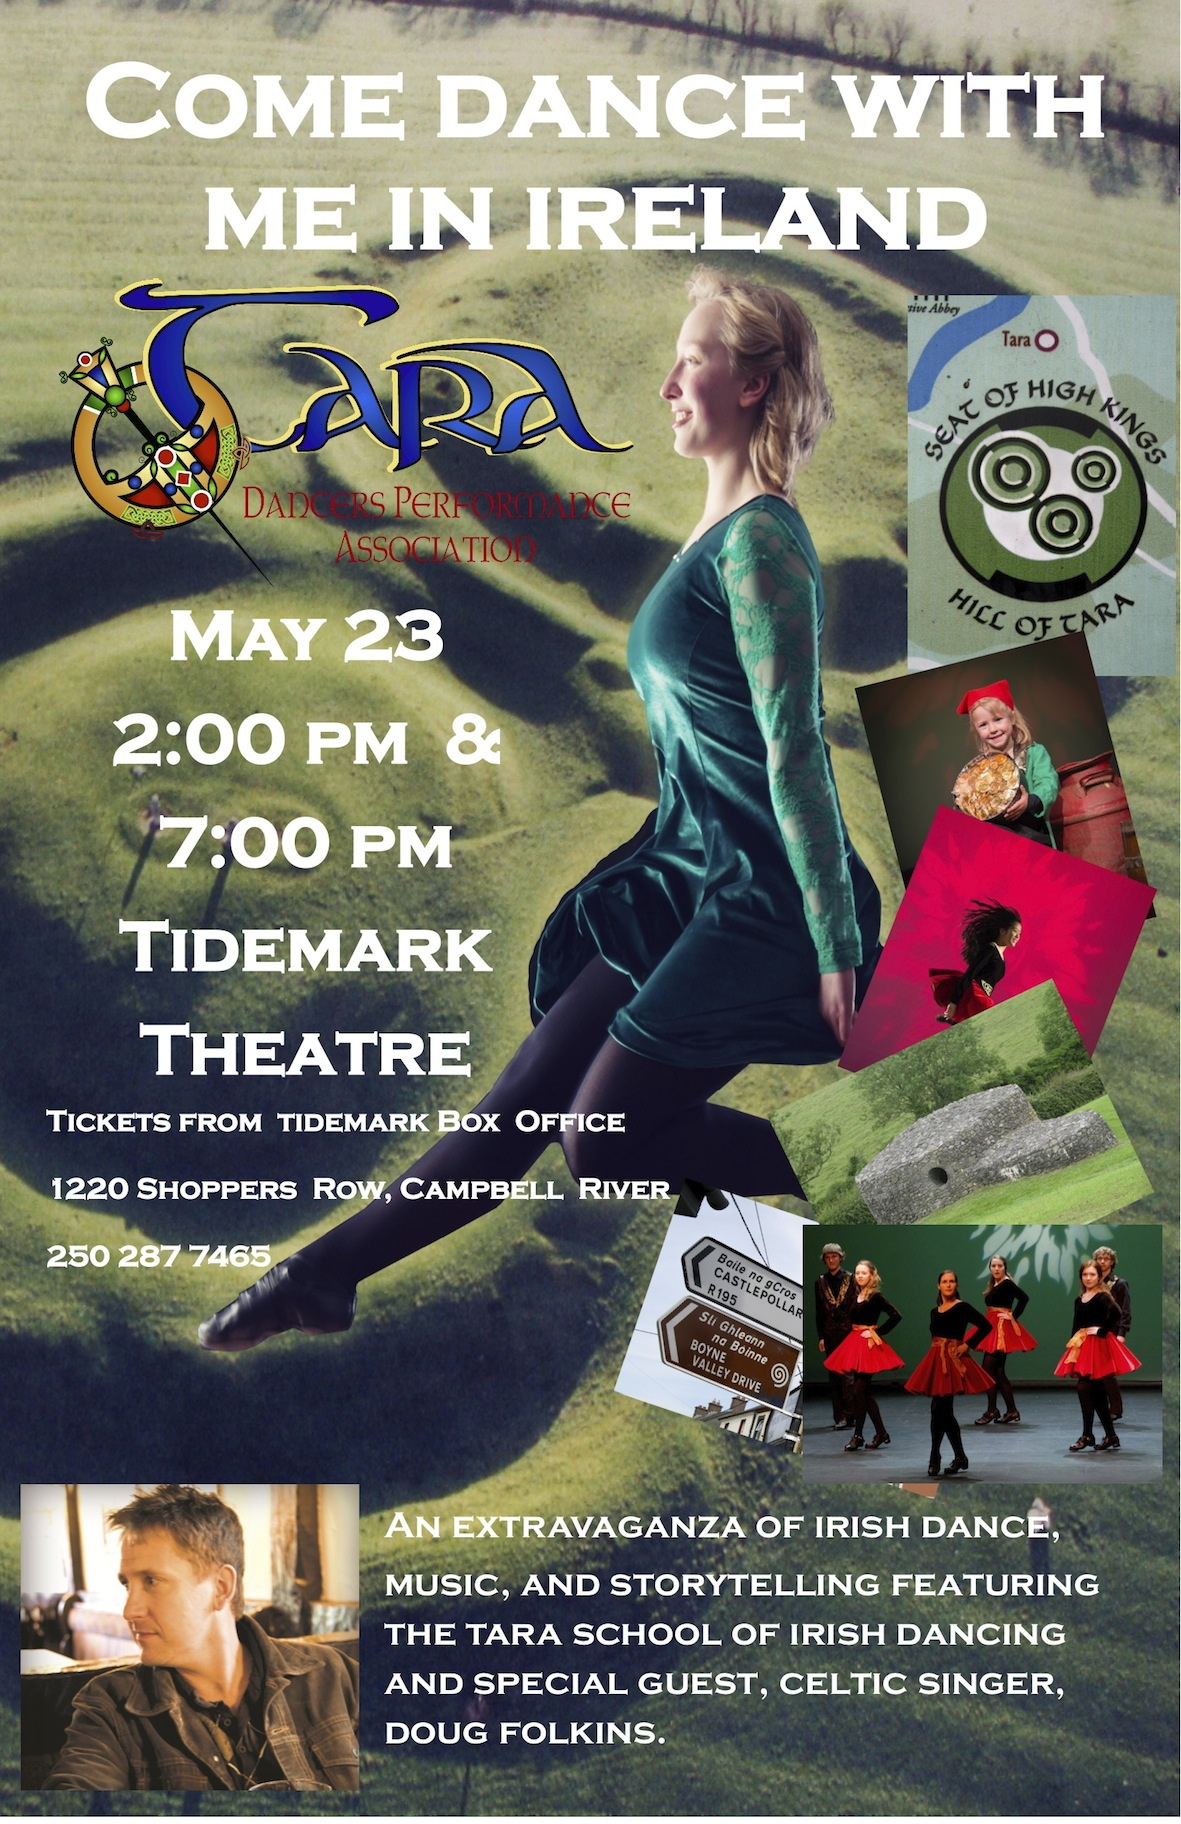 Come Dance With Me In Ireland – May 23 at Campbell River's Tidemark Theatre